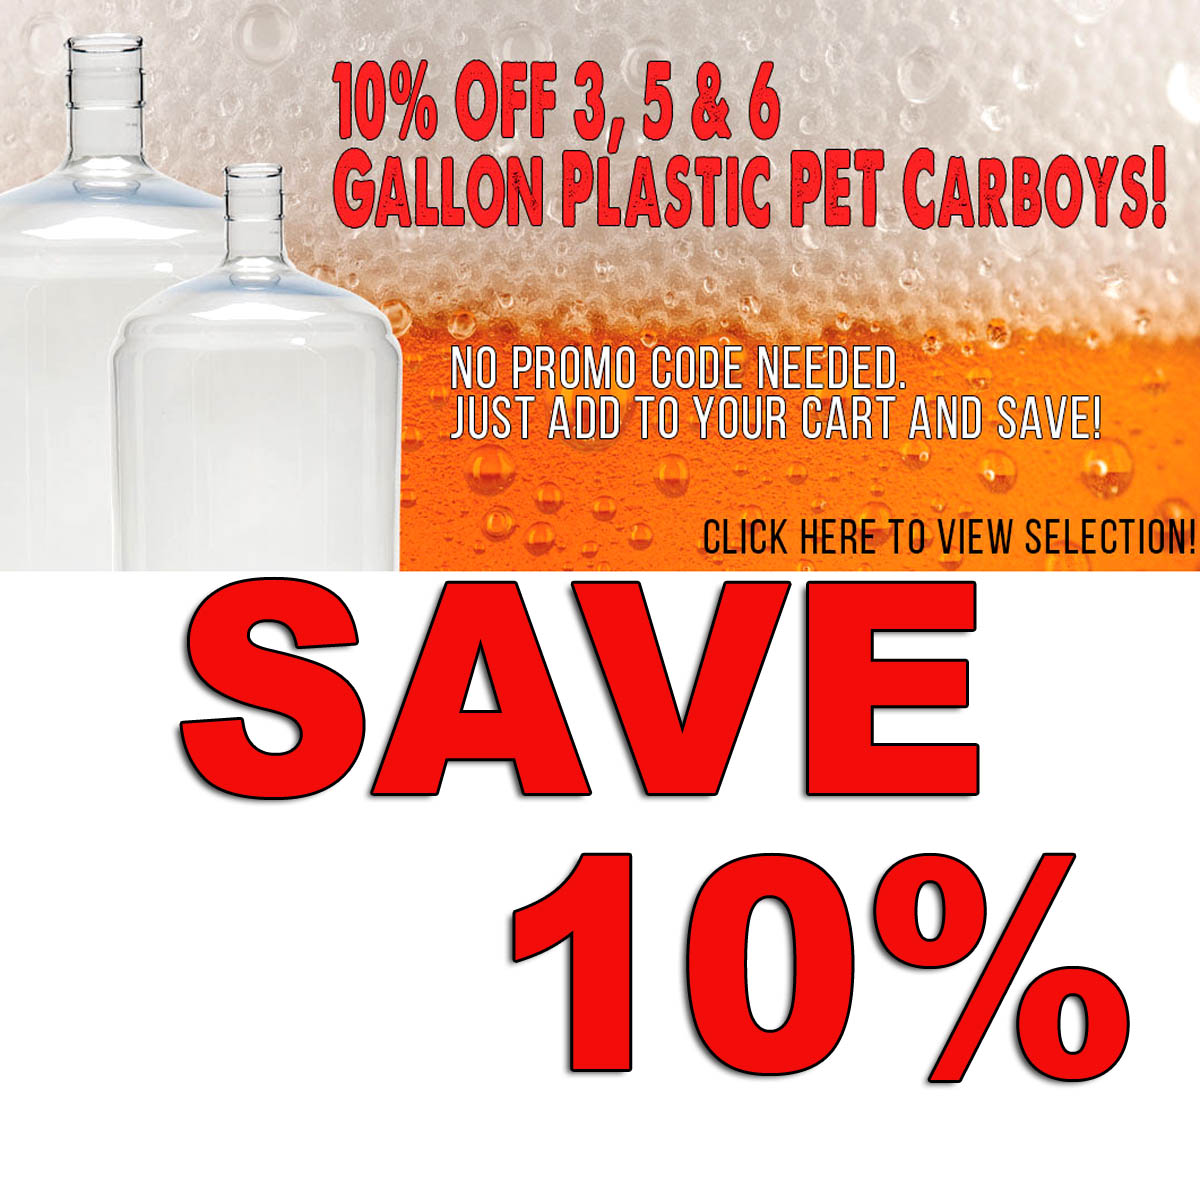 Home Brewer Promo Code for Save 10% On PET Plastic Carboys + Free Shipping Over $59 Coupon Code